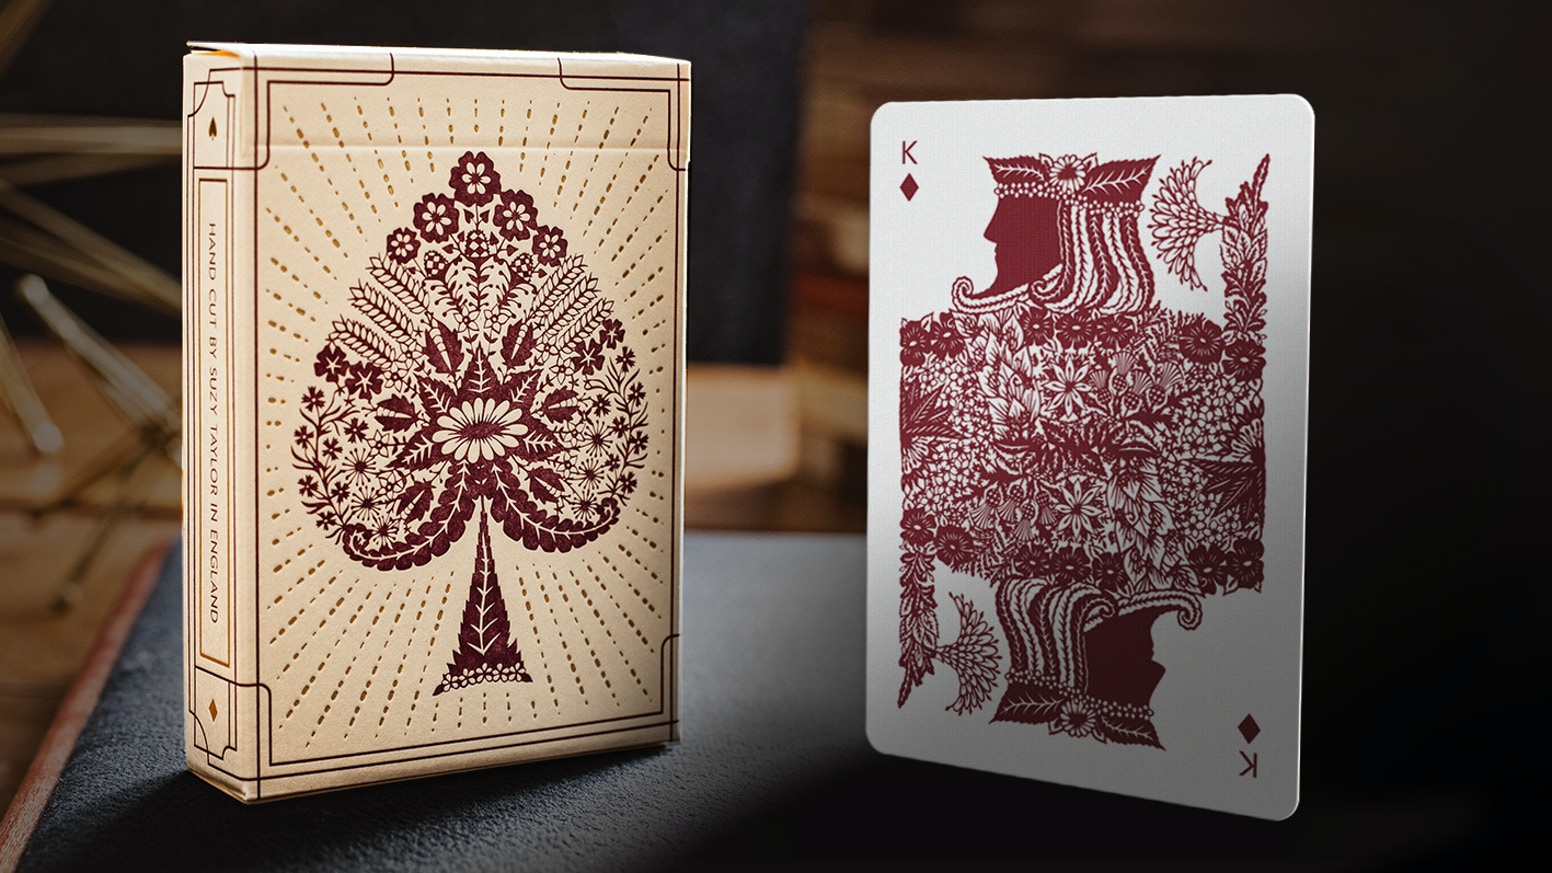 A unique set of playing cards, crafted by hand, through the delicate art of paper cutting.